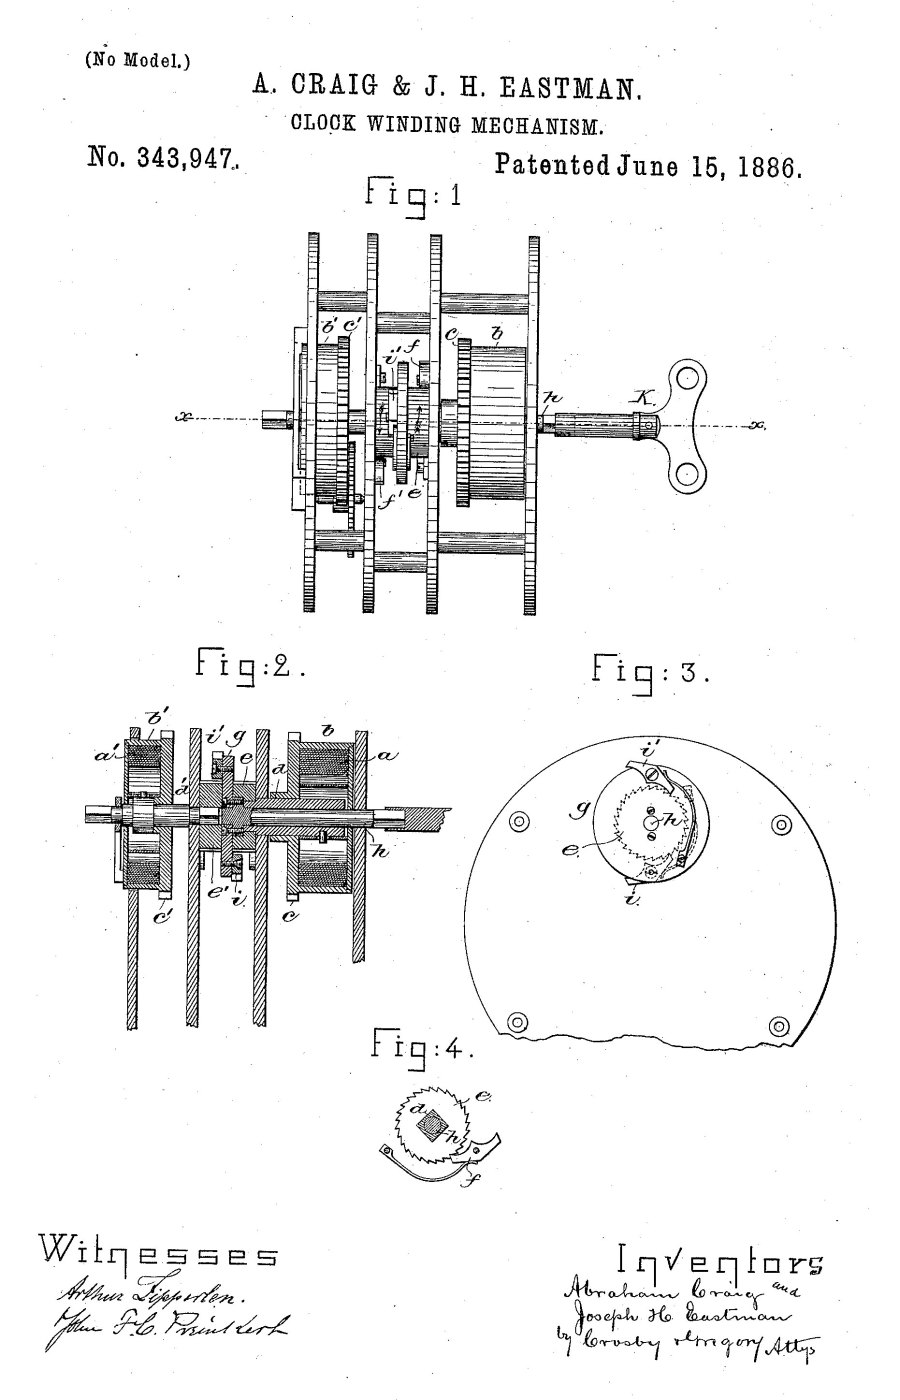 In 1886, the Boston Clock Company, patented the famous tandem wind striking movement.